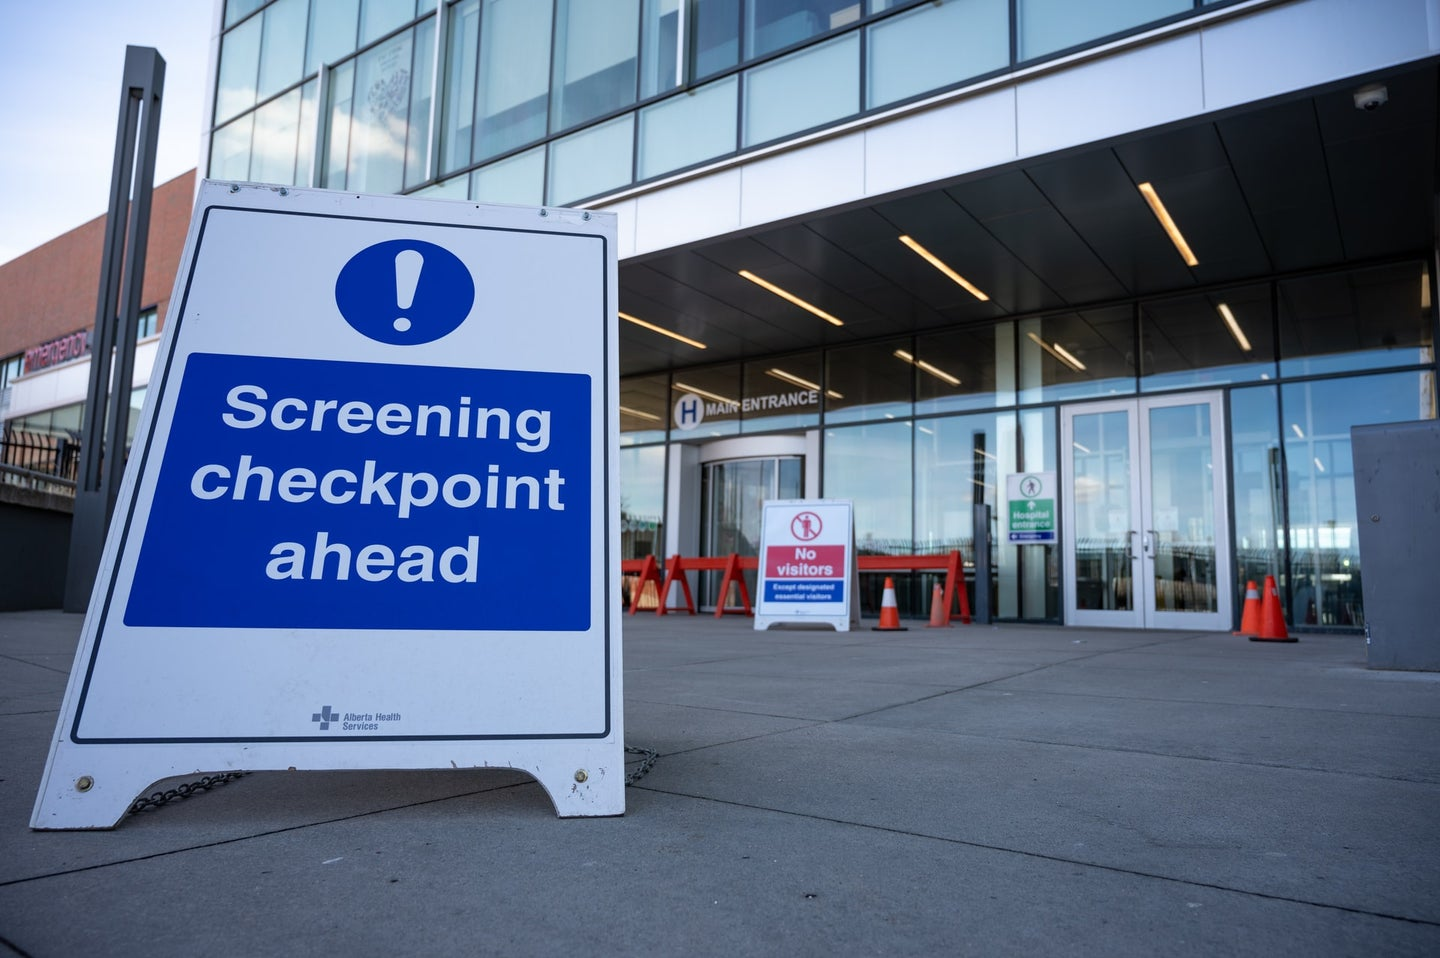 A COVID-19 screening checkpoint at Chinook Regional Hospital in Alberta, Canada